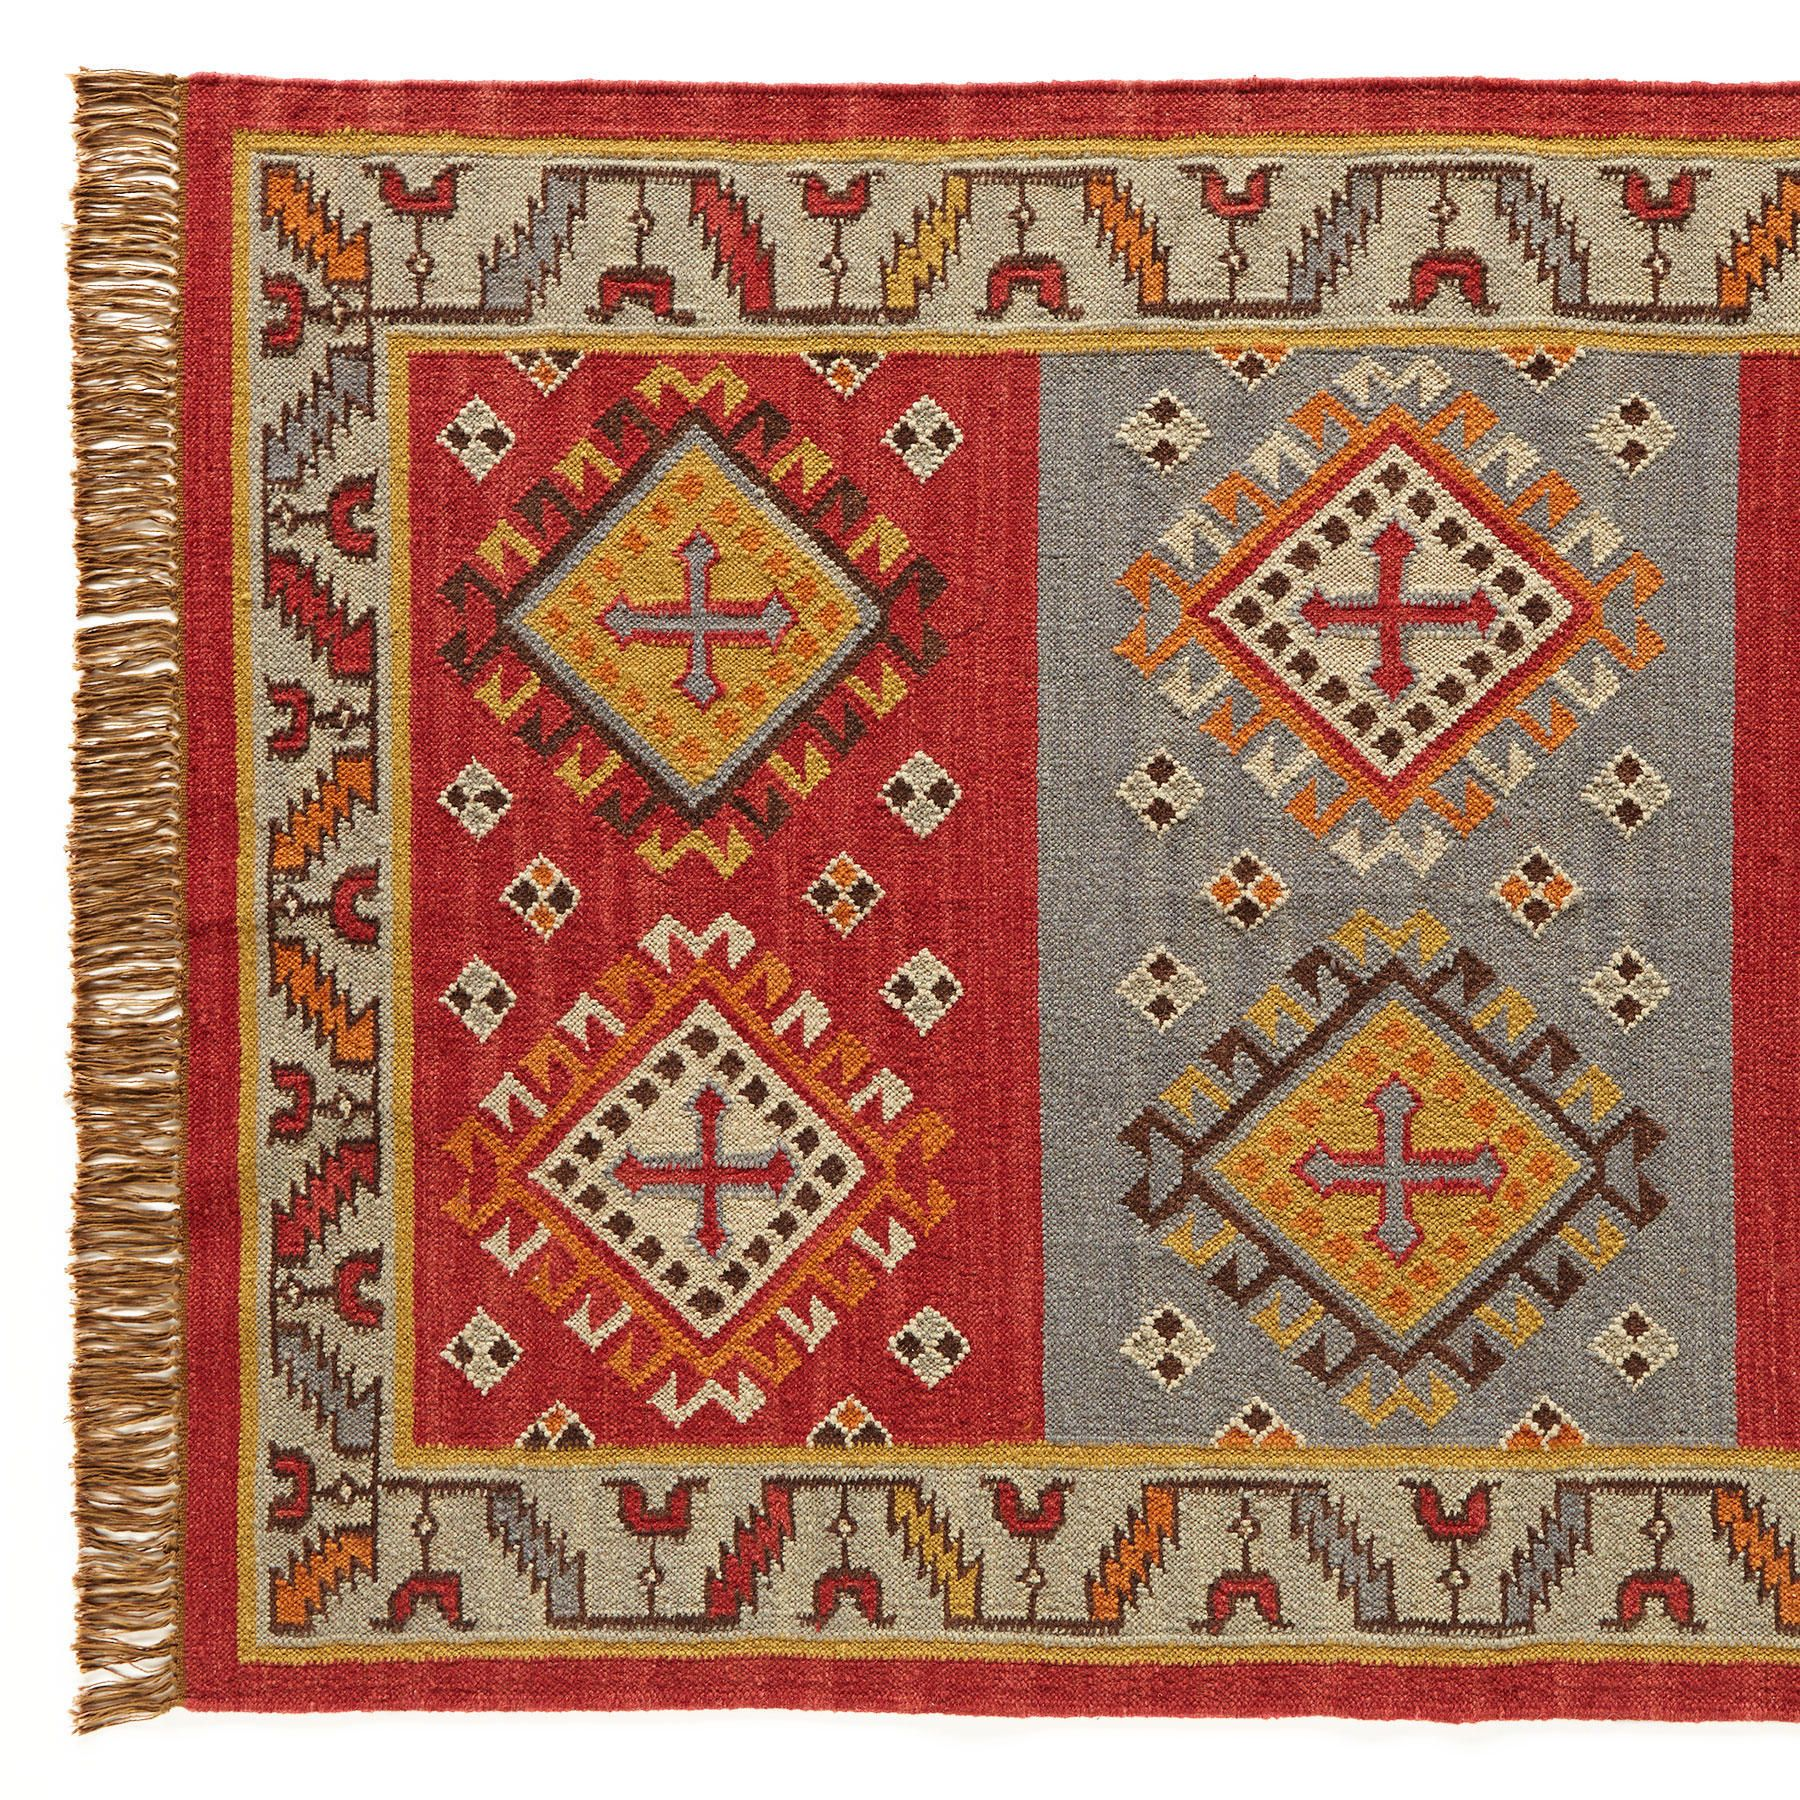 Heraldic Wool Dhurrie Stylized Crosses Give Our Flatweave Rug A Medieval Air Interpreted In Strong Shades Of Red And Orange Cool Dhurrie Rugs Dhurrie Rugs